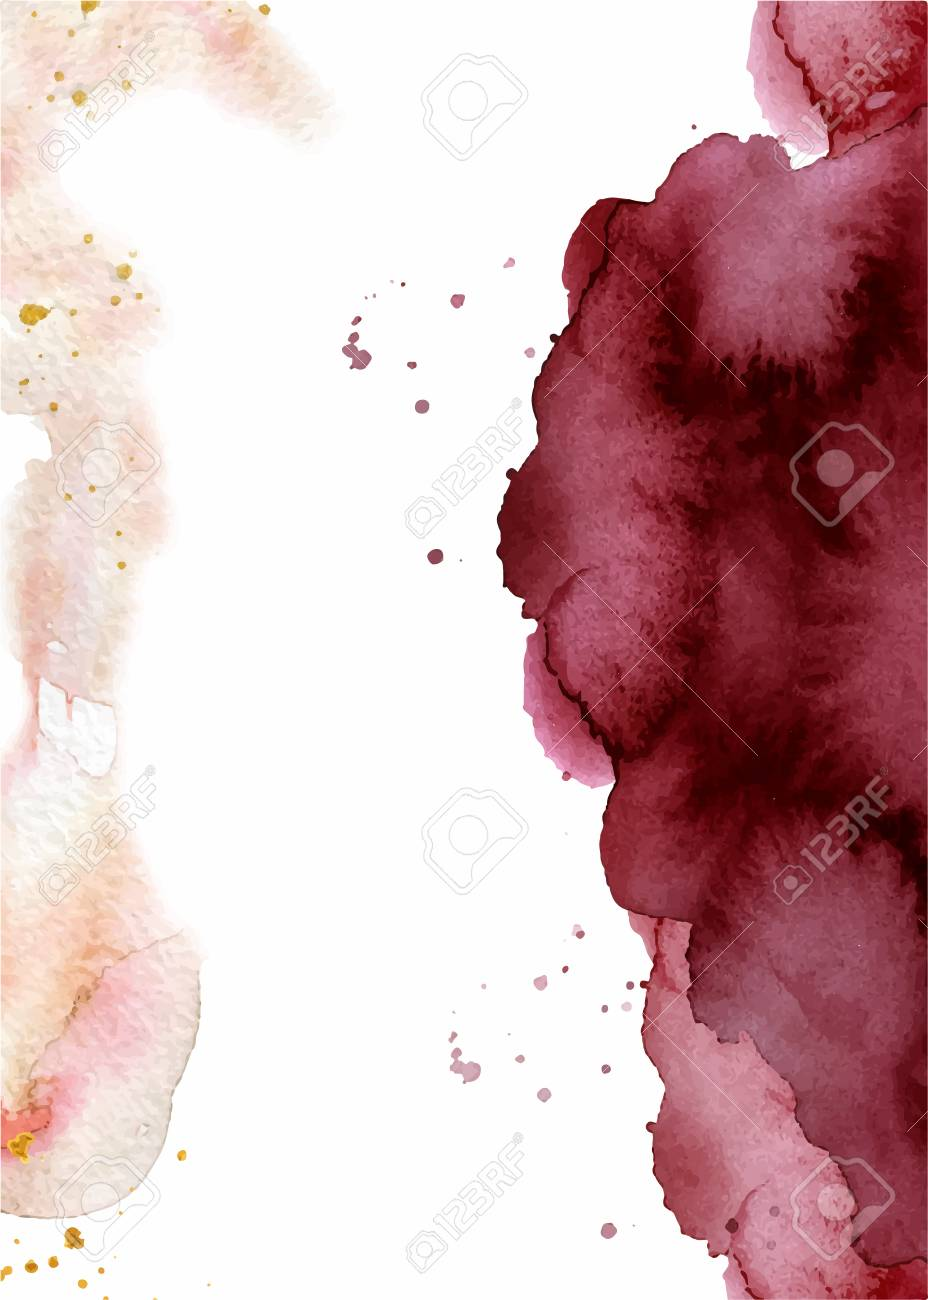 watercolor abstract background hand drawn watercolour burgundy royalty free cliparts vectors and stock illustration image 114550572 watercolor abstract background hand drawn watercolour burgundy